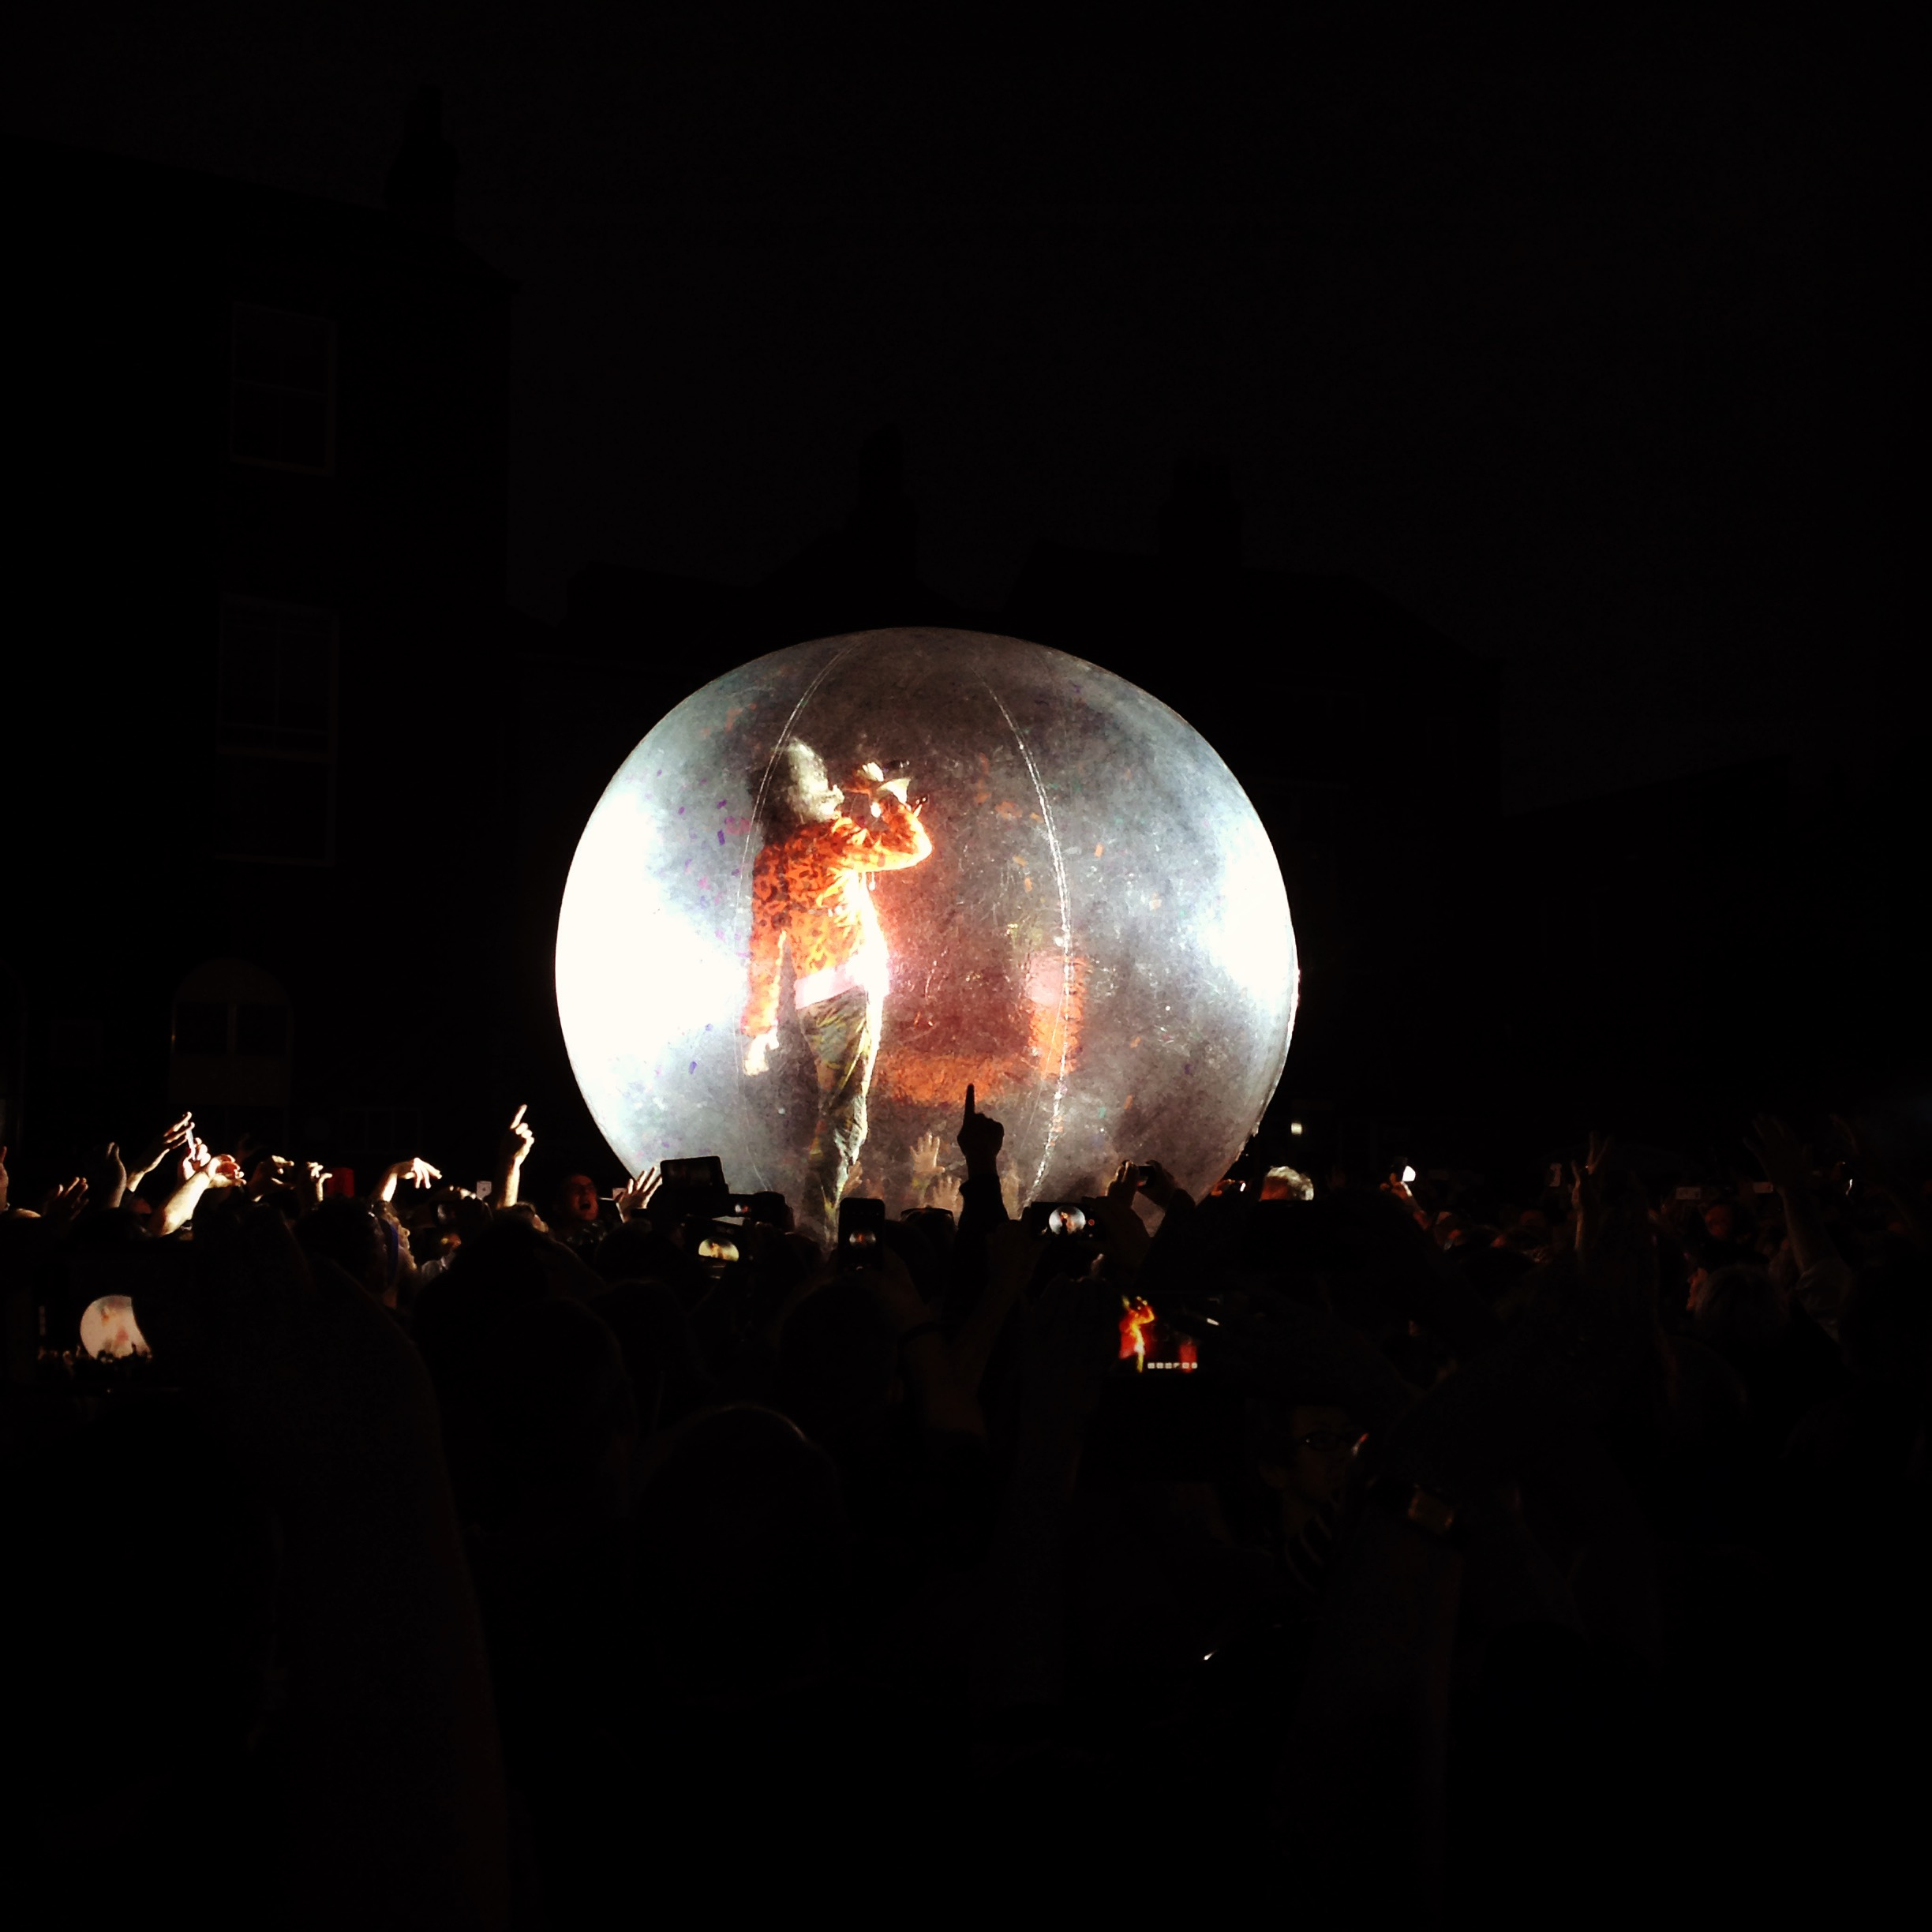 """""""For here I am sitting in a tin can"""" - channeling Bowie in a giant ball on top of the crowd."""